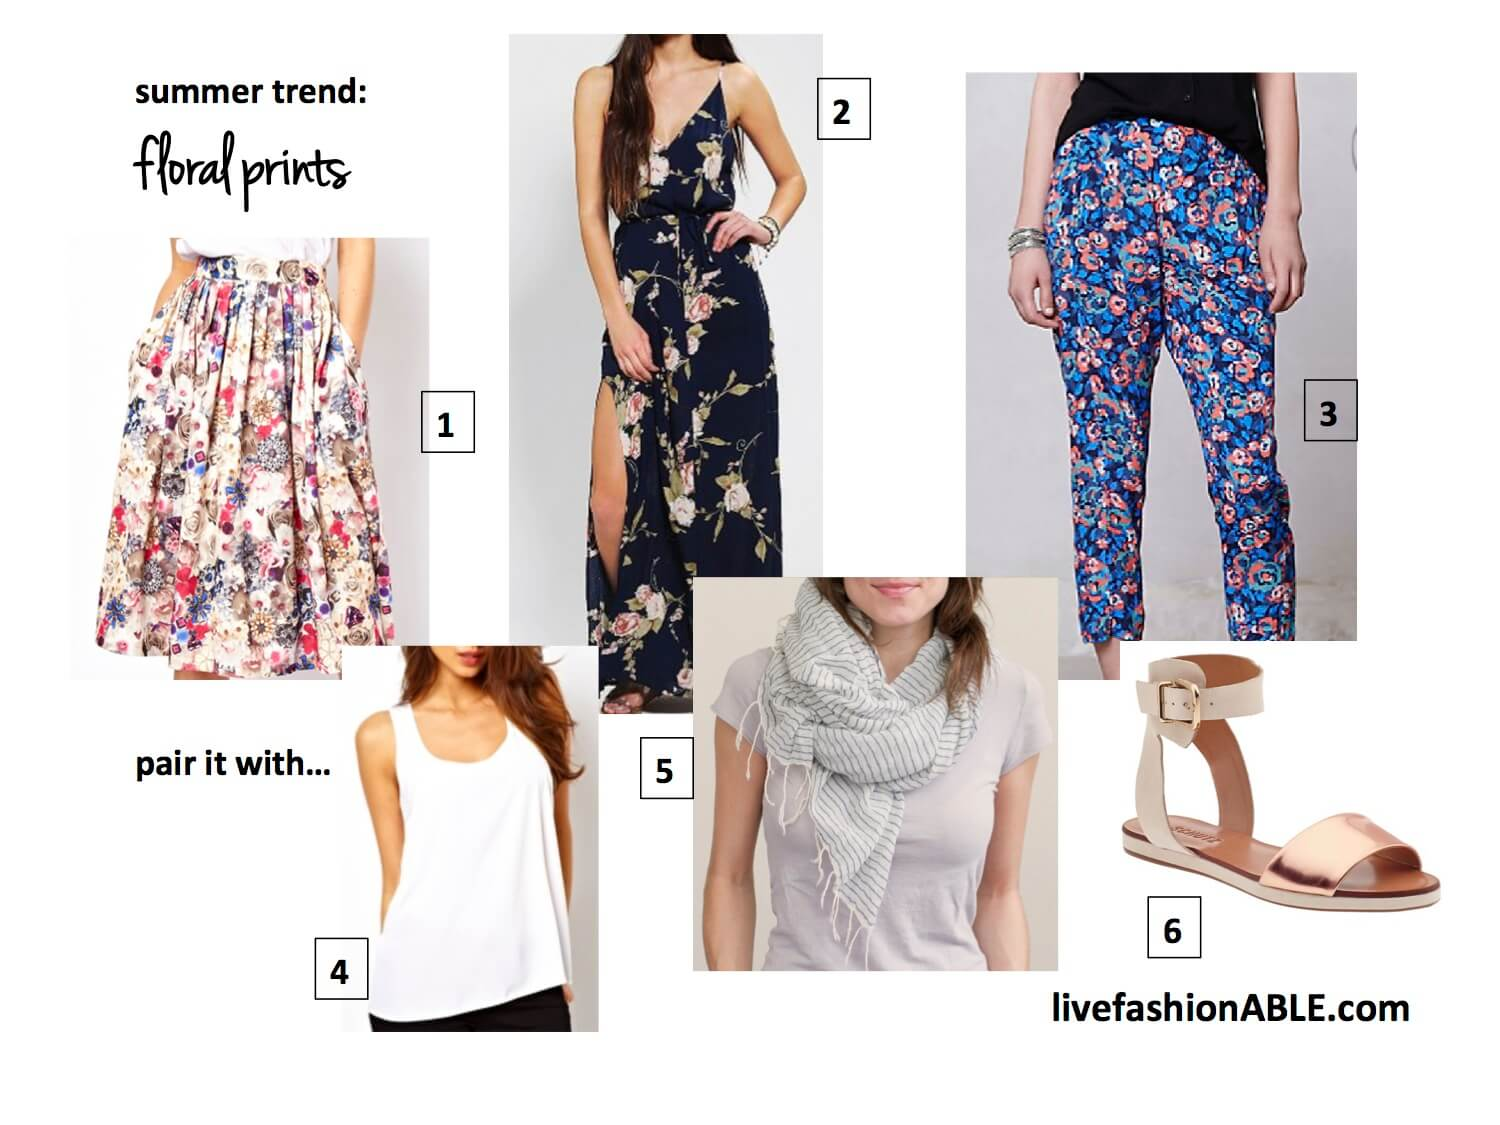 fashionABLE summer trends: Floral Prints